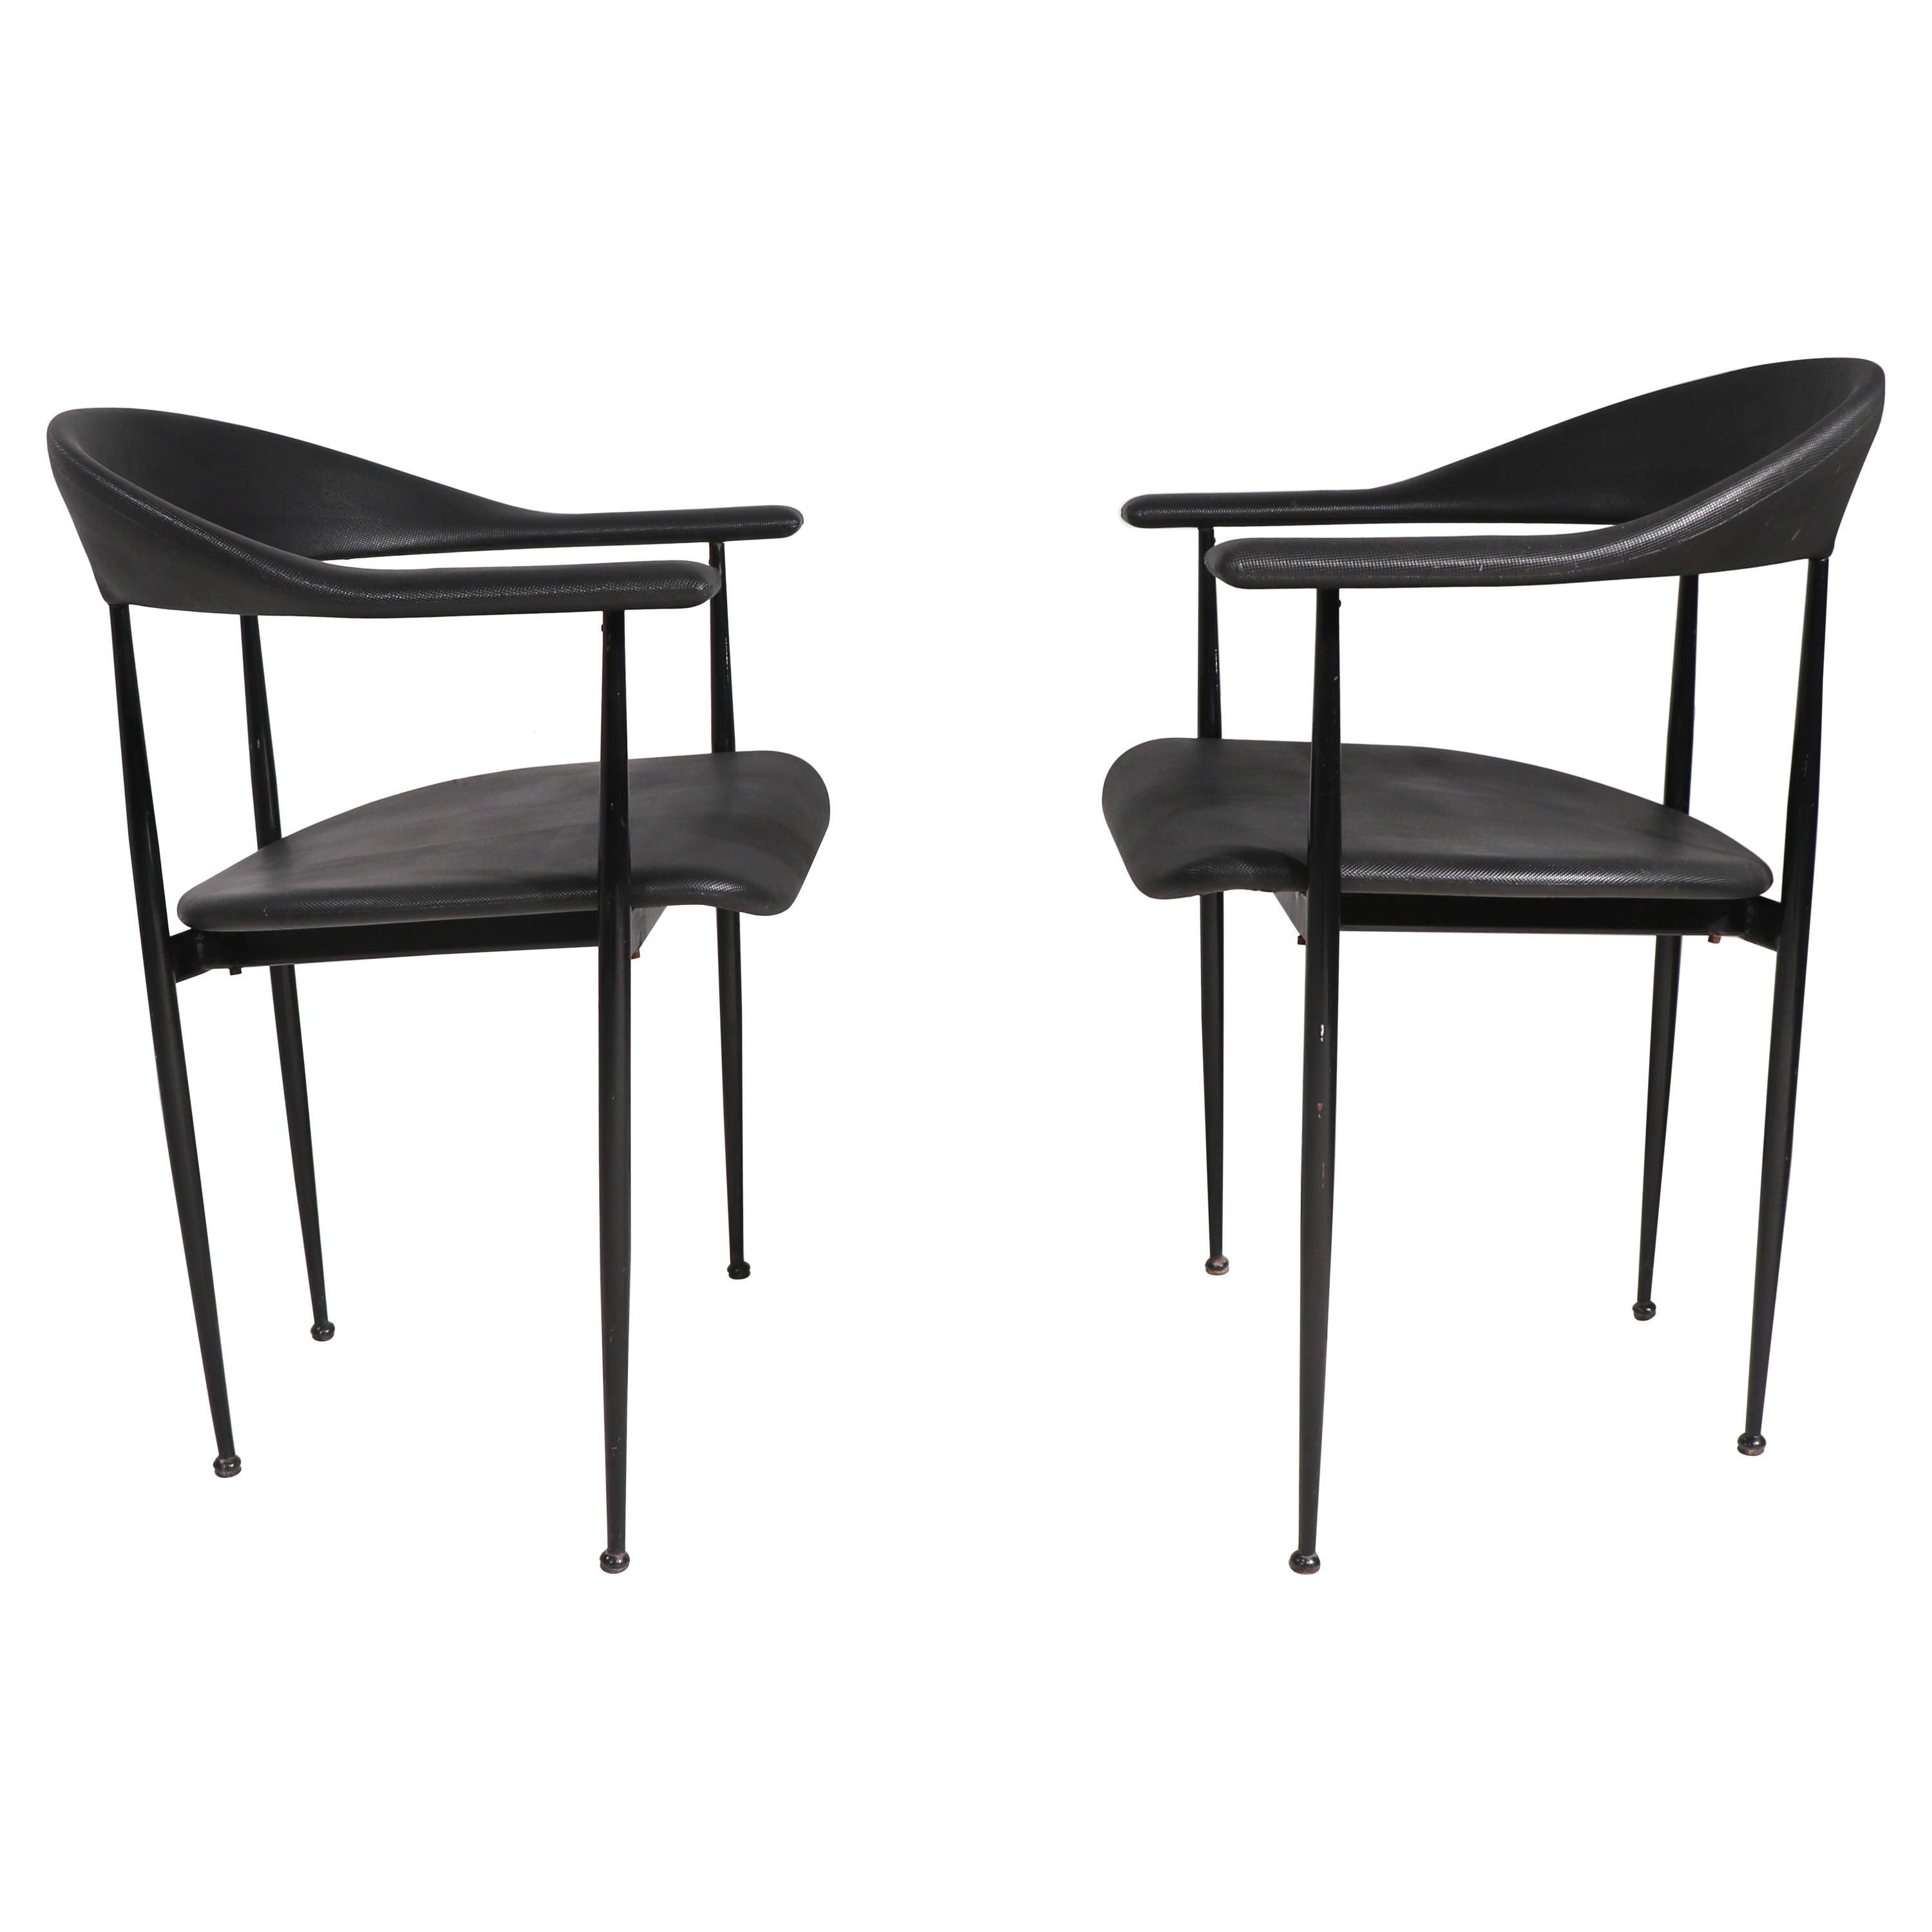 Pr Post Modern Arm Lounge Chairs Retailed by Conrans Habitat NYC